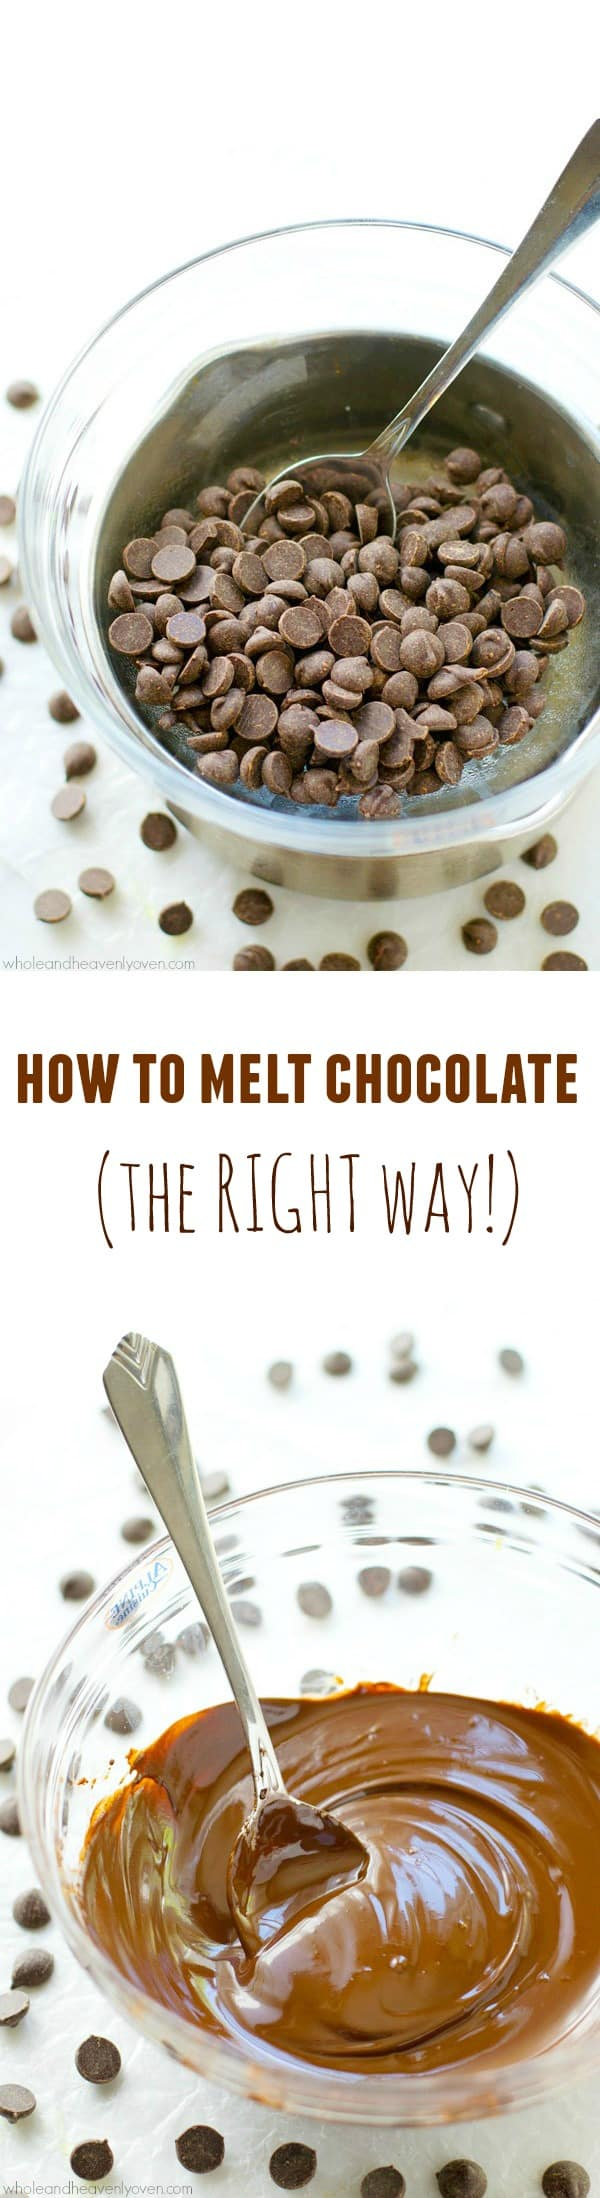 Learn how to melt chocolate perfectly every time with this easy tutorial. All you'll need is a saucepan, a bowl and all the chocolate you desire! @WholeHeavenly